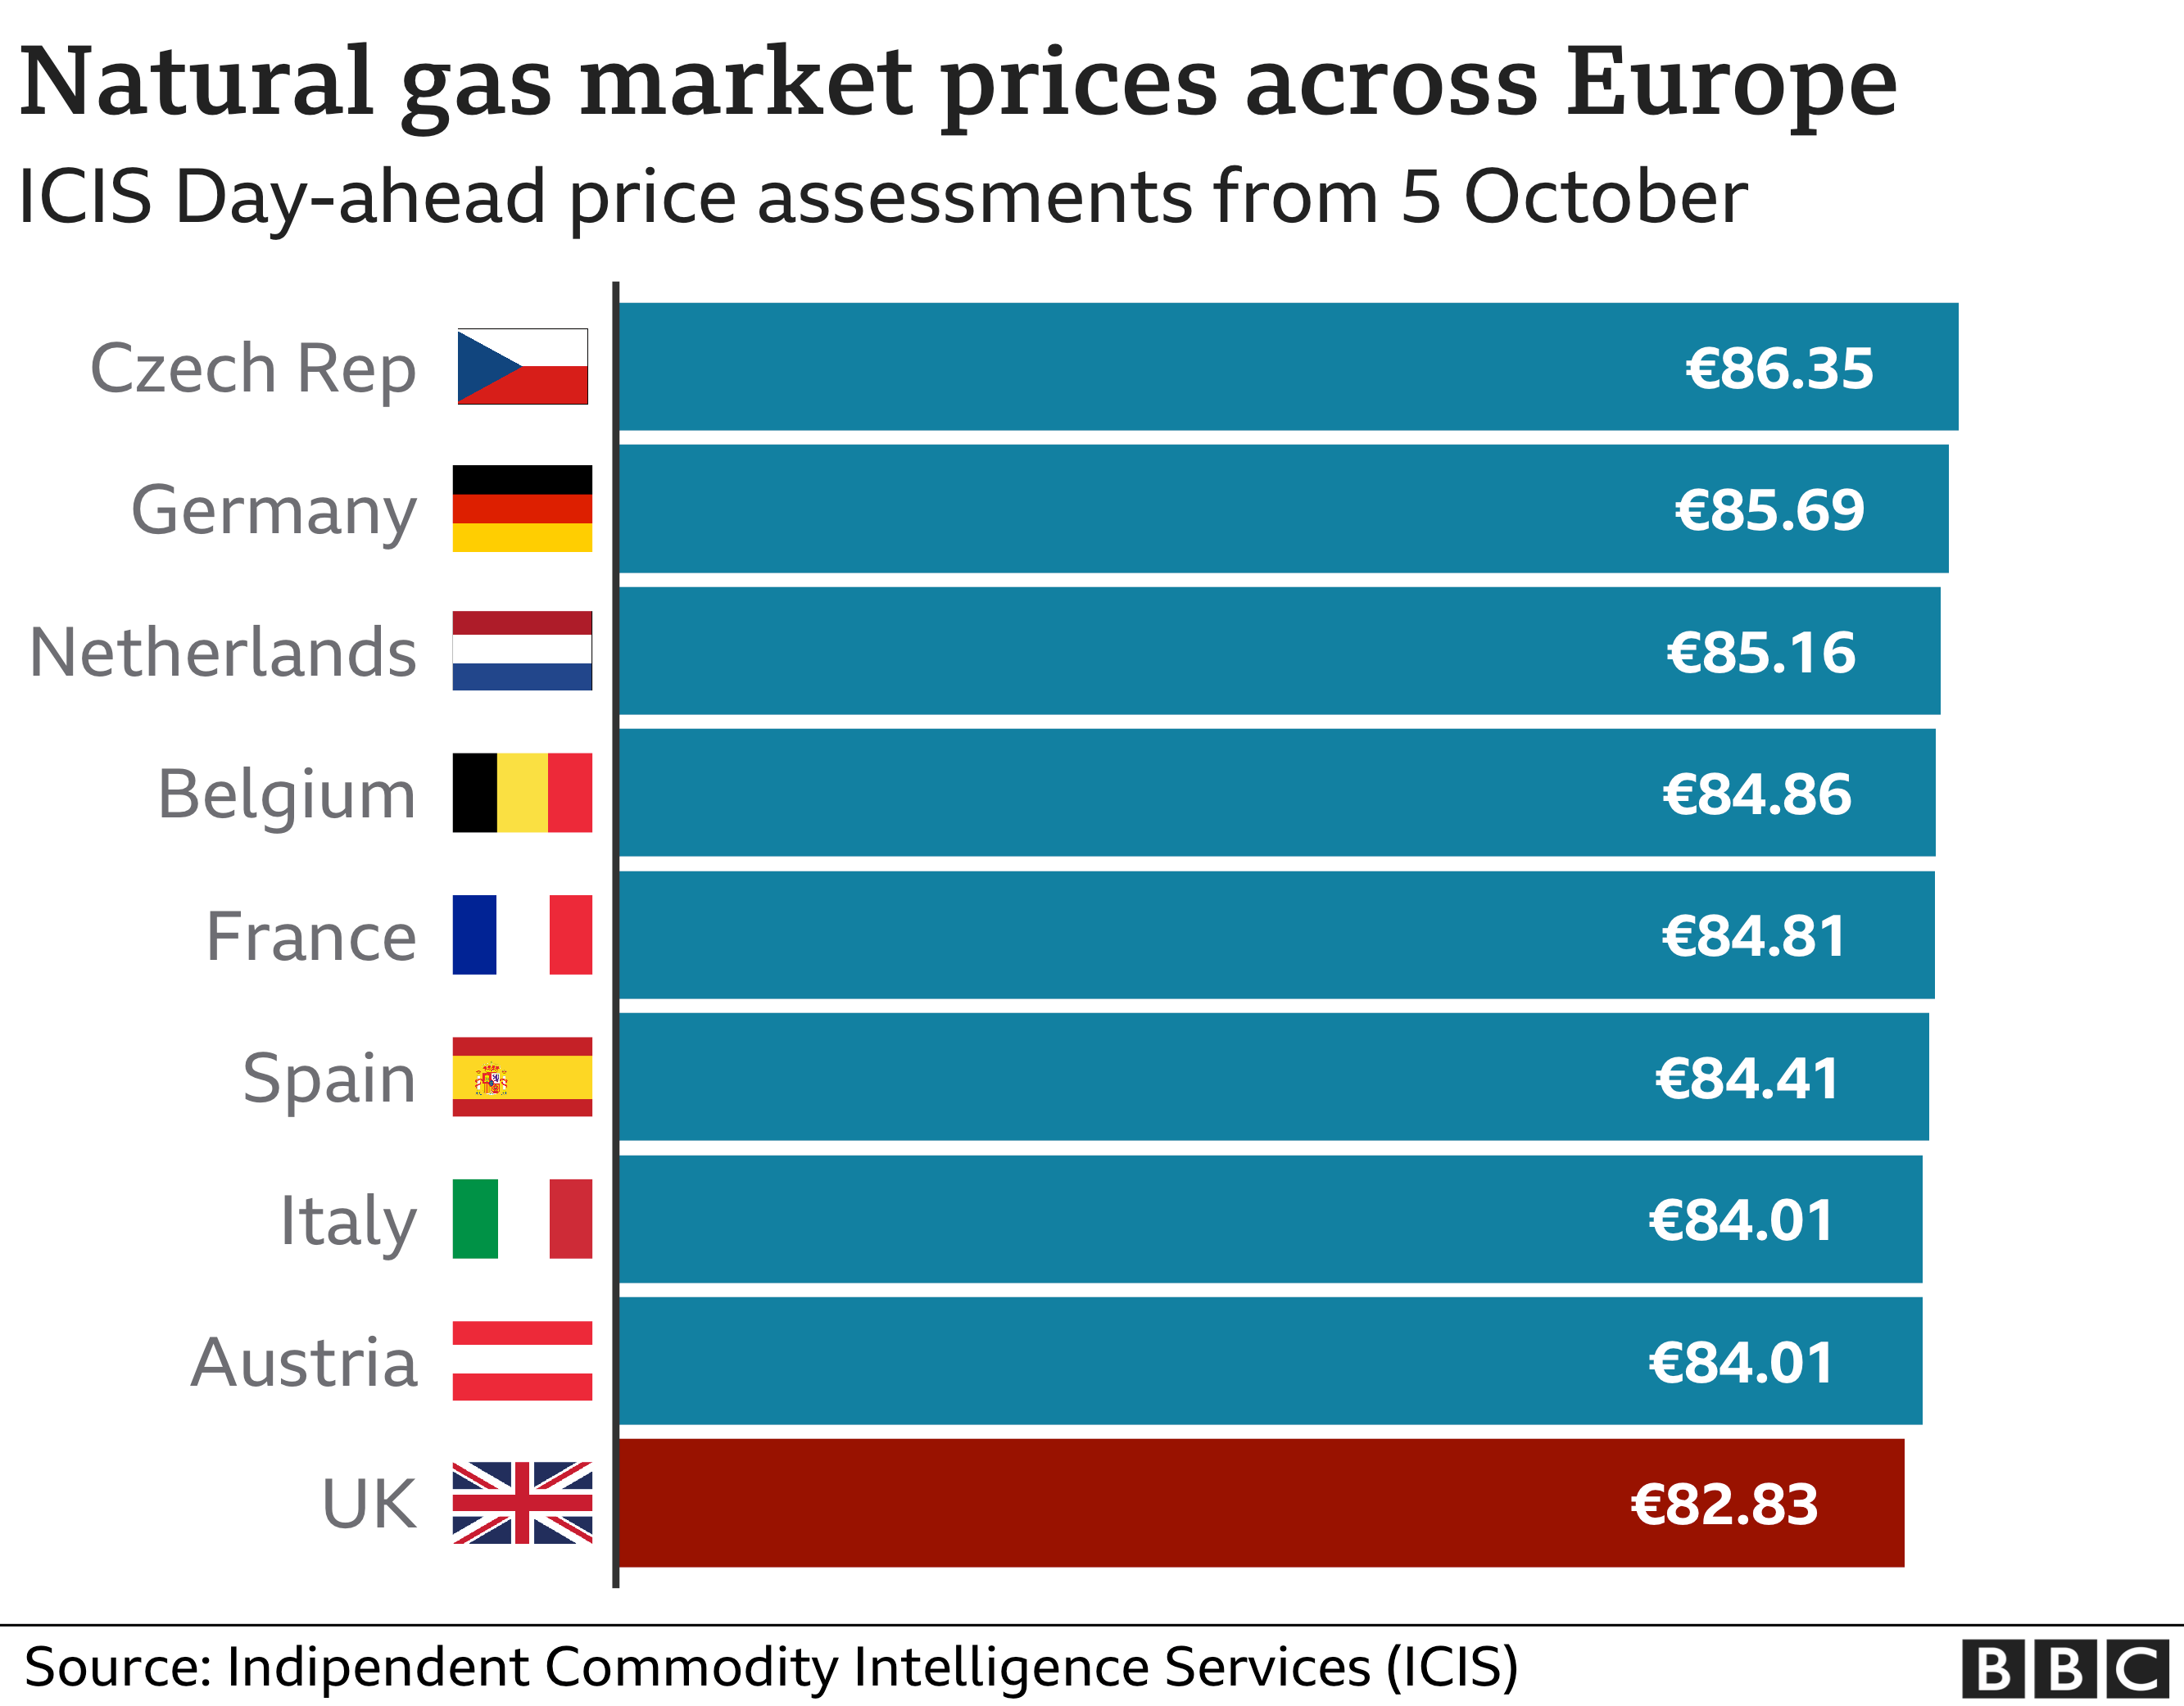 A graphic showing natural gas prices across Europe